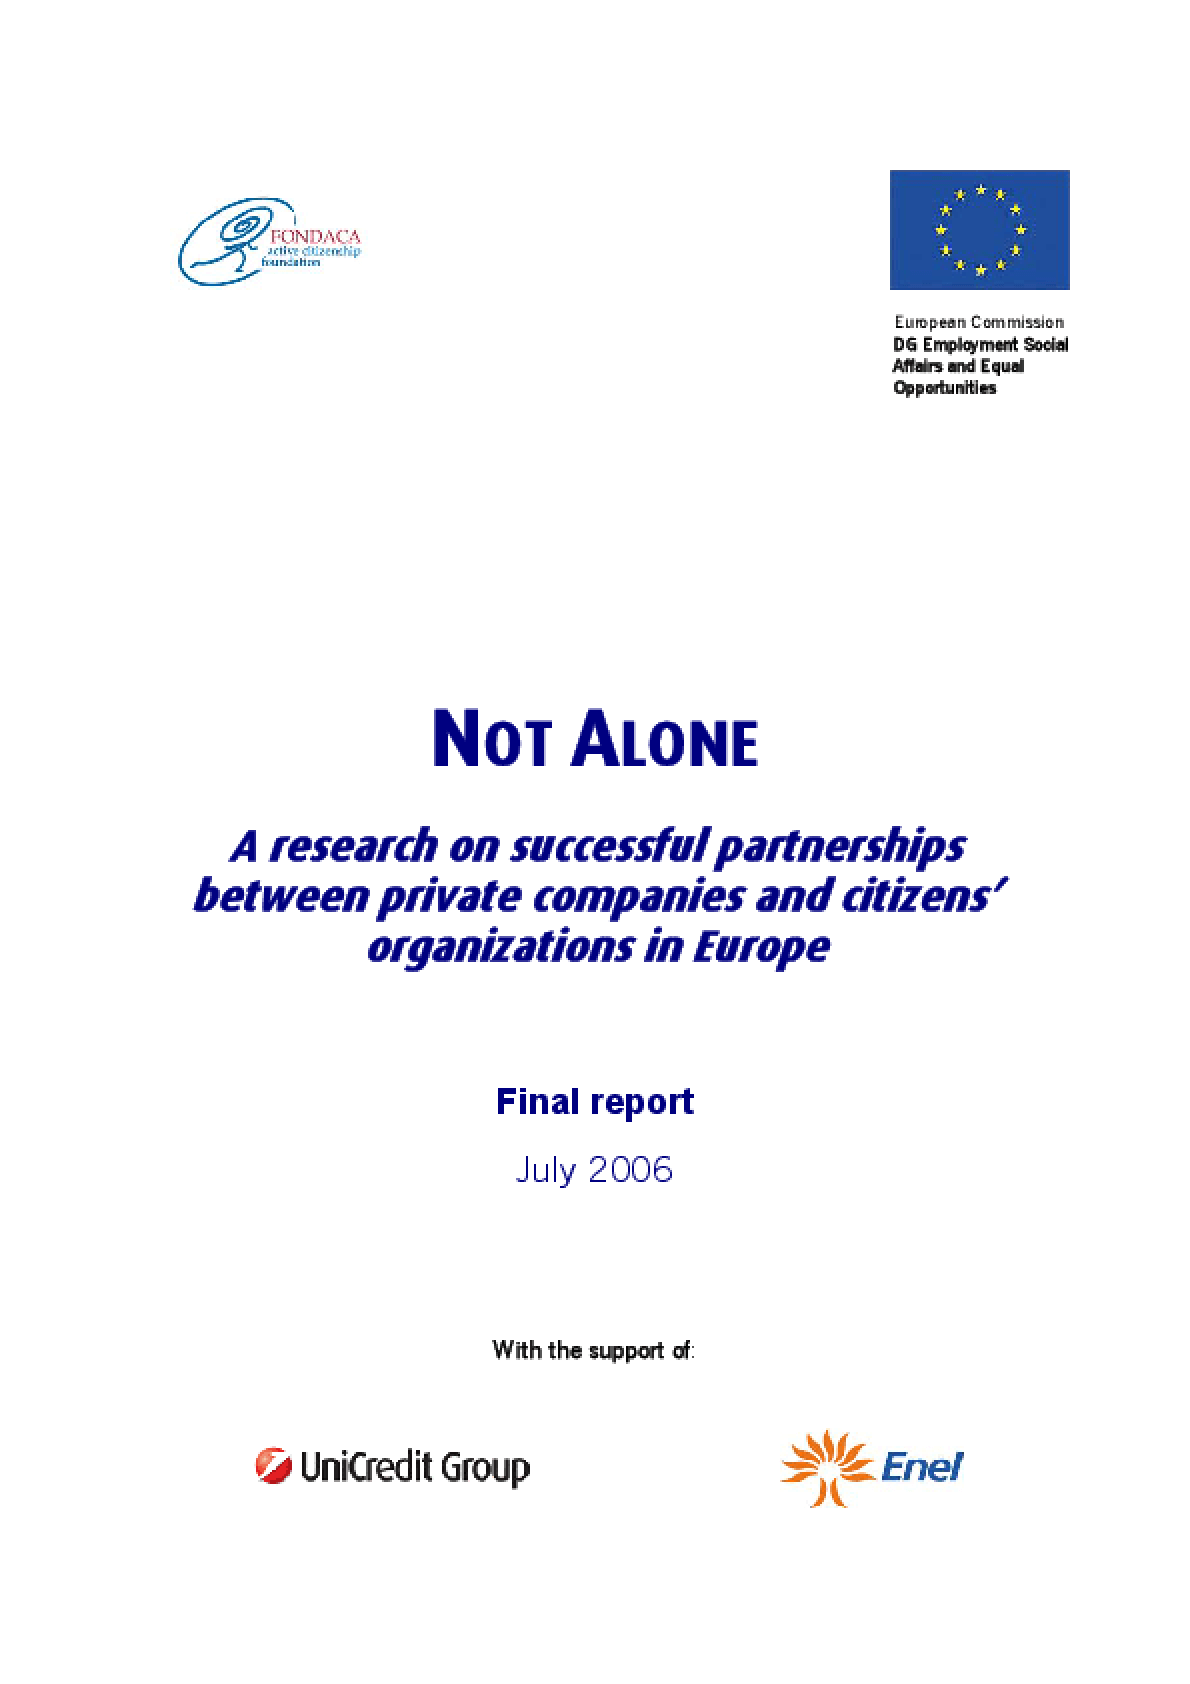 Not Alone: A Research On Successful Partnerships Between Private Companies and Citizens' Organizations in Europe